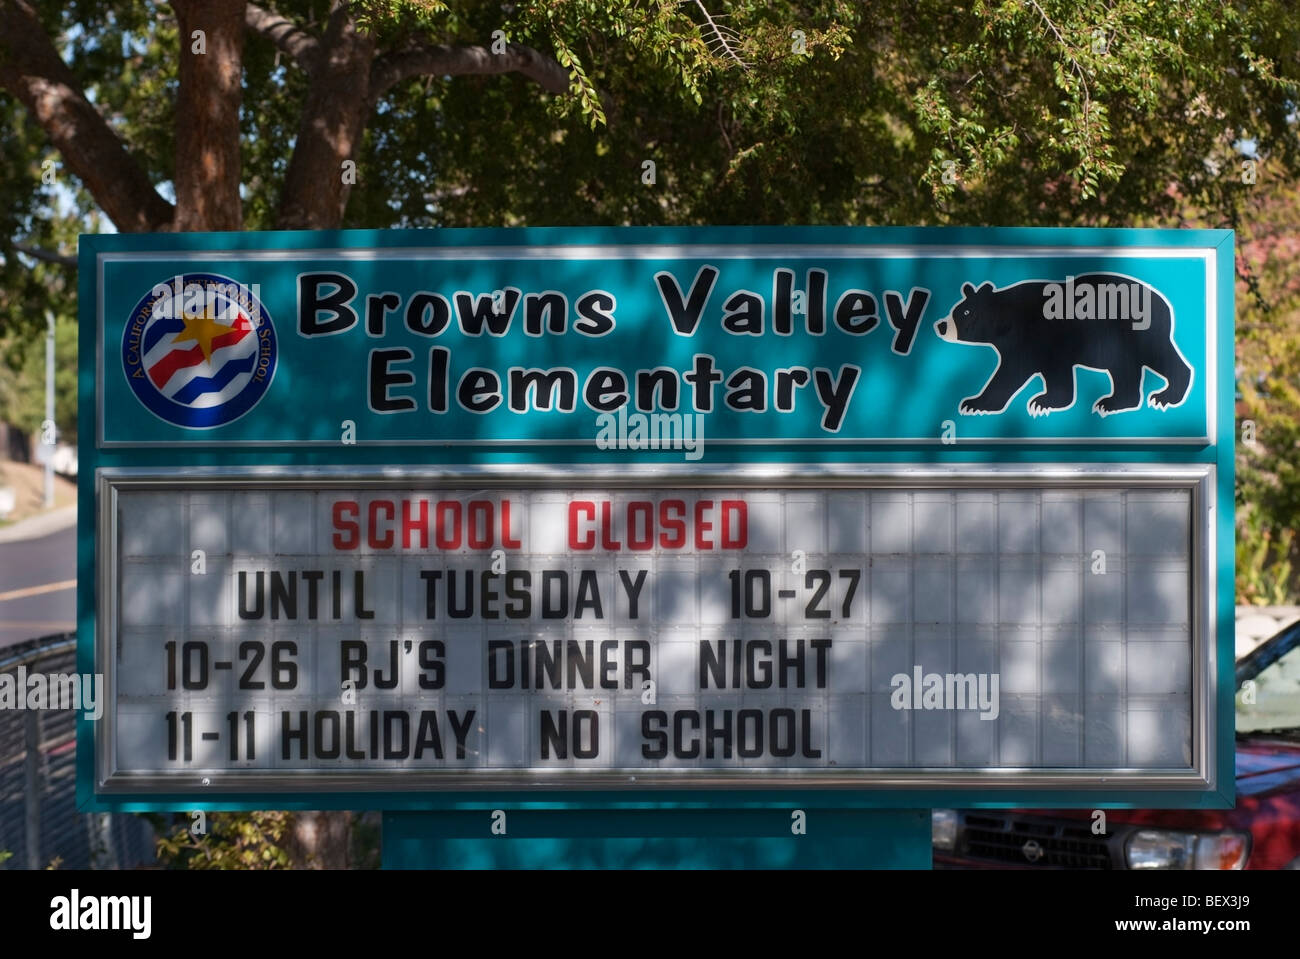 Browns Valley Elementary School Closed after a 6 year-old 1st grade student died of Swine Flu in Vacaville, California. - Stock Image